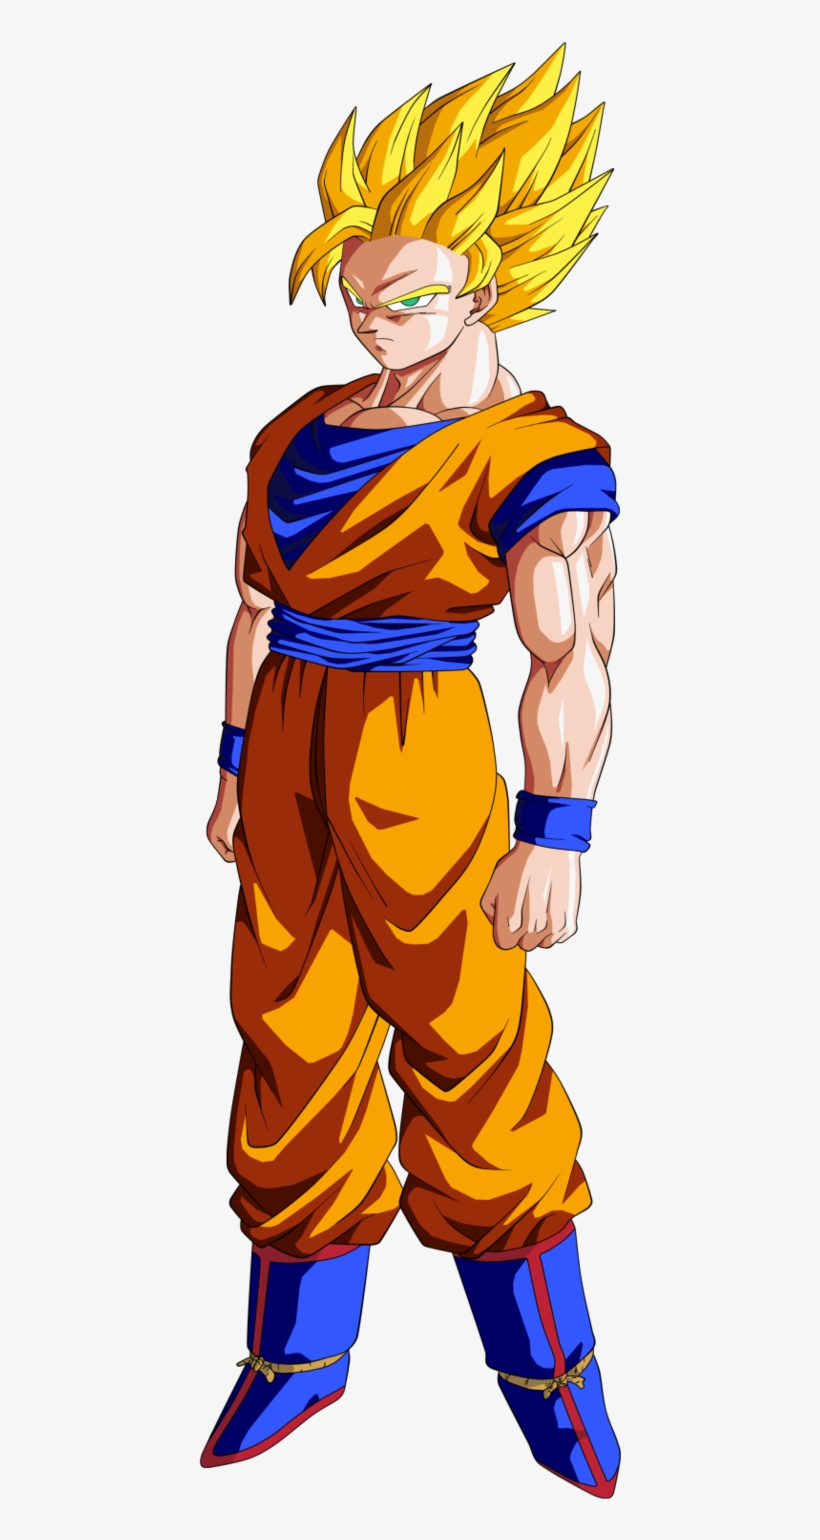 Super Saiyan 2 Goku Dragon Ball Z - Dragon Ball Z Goku Ssj2, transparent png #3109907